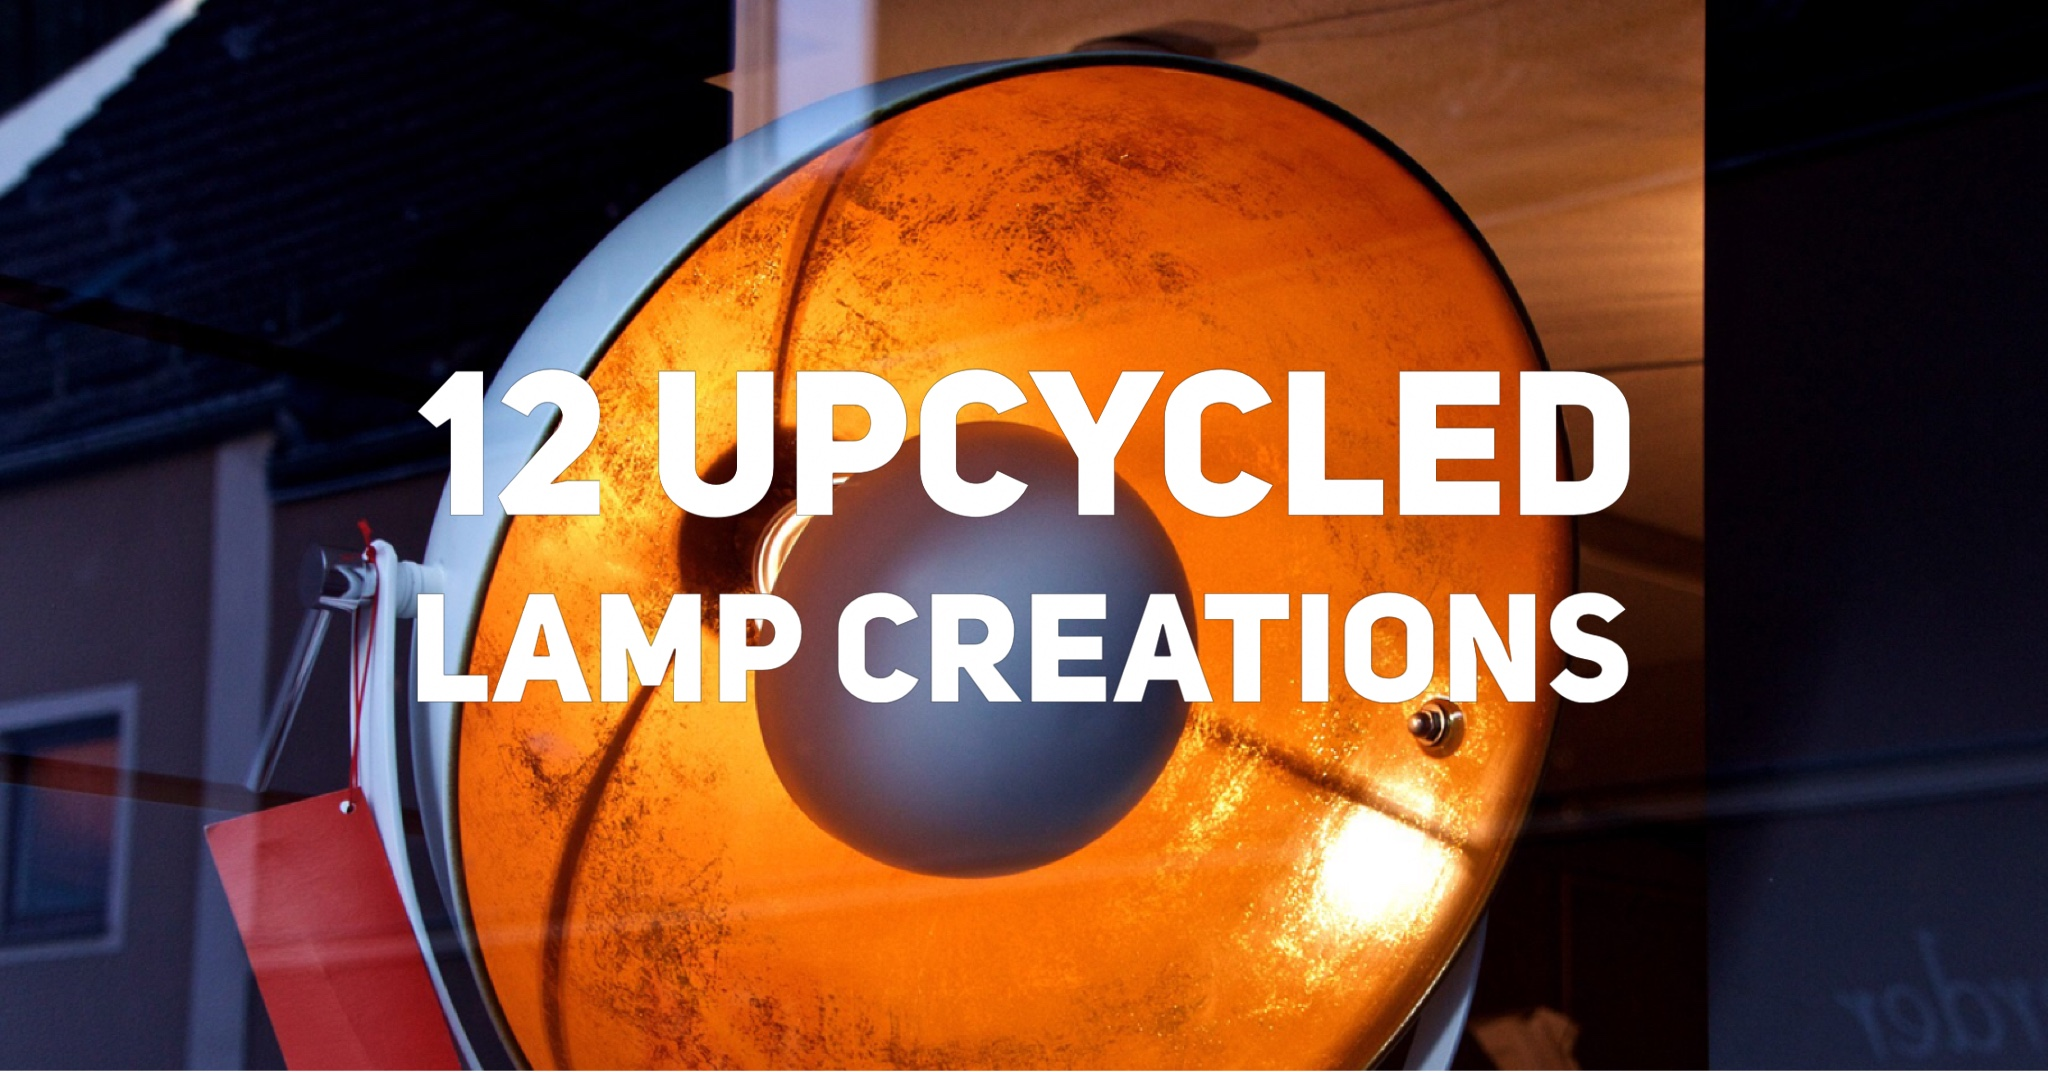 12-upcycled-lamp-creations-cover